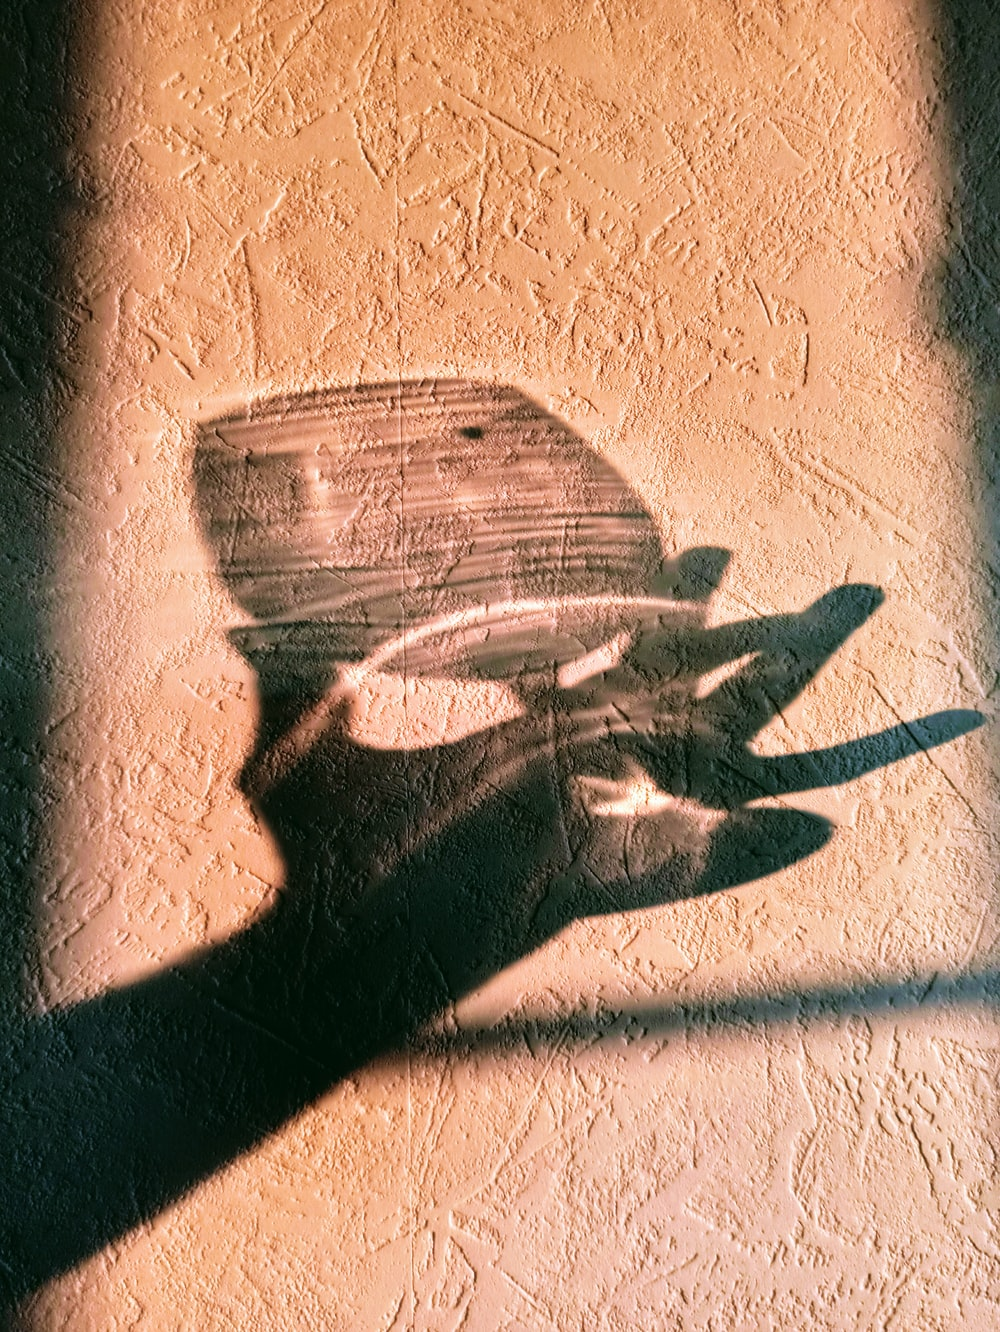 shadow of person holding clear glass cup